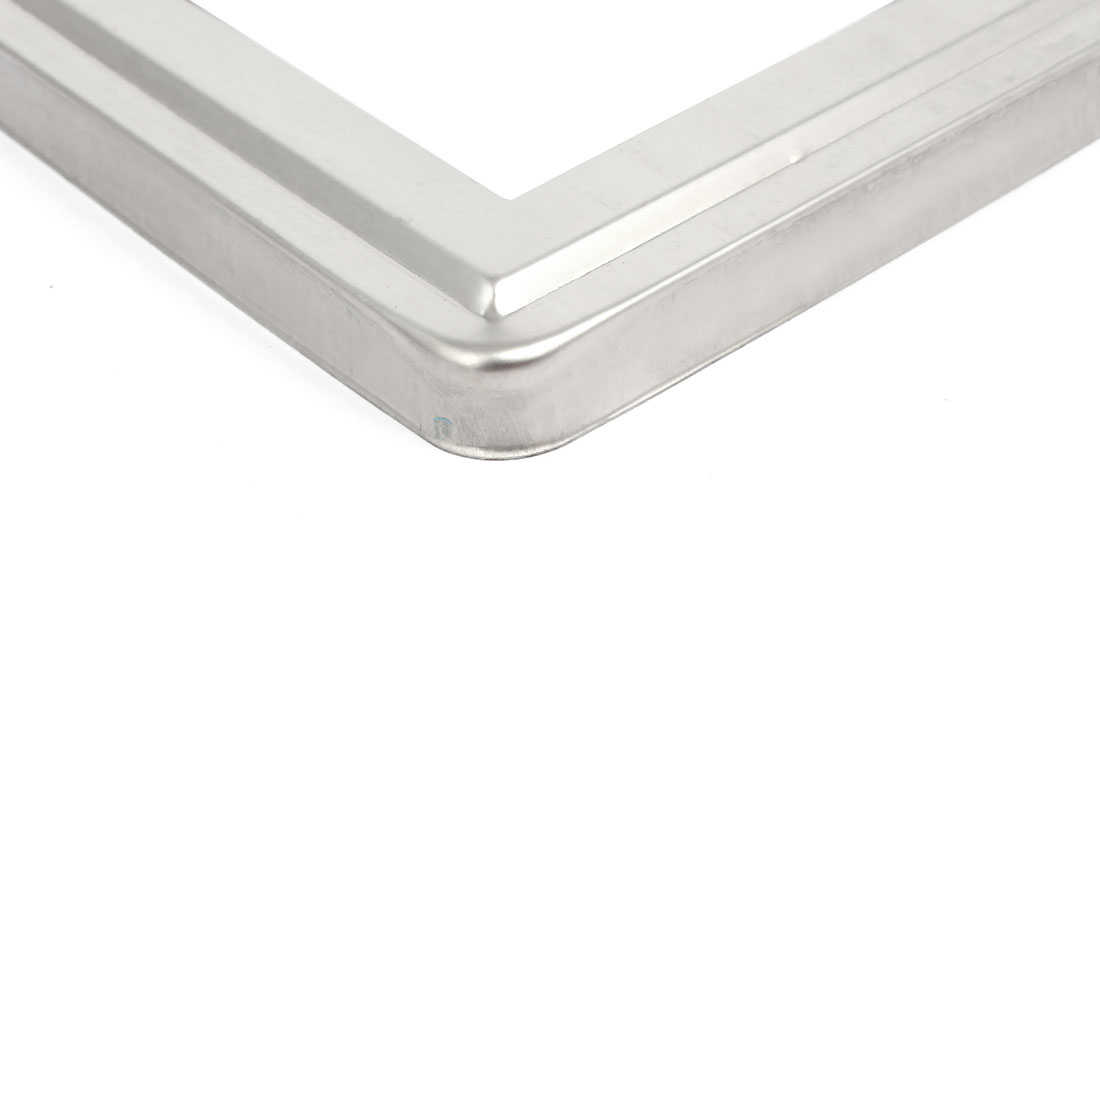 Unique Bargains Stair Handrail Hand Rail 80mmx80mm Post Base Plate Cover 304 Stainless Steel